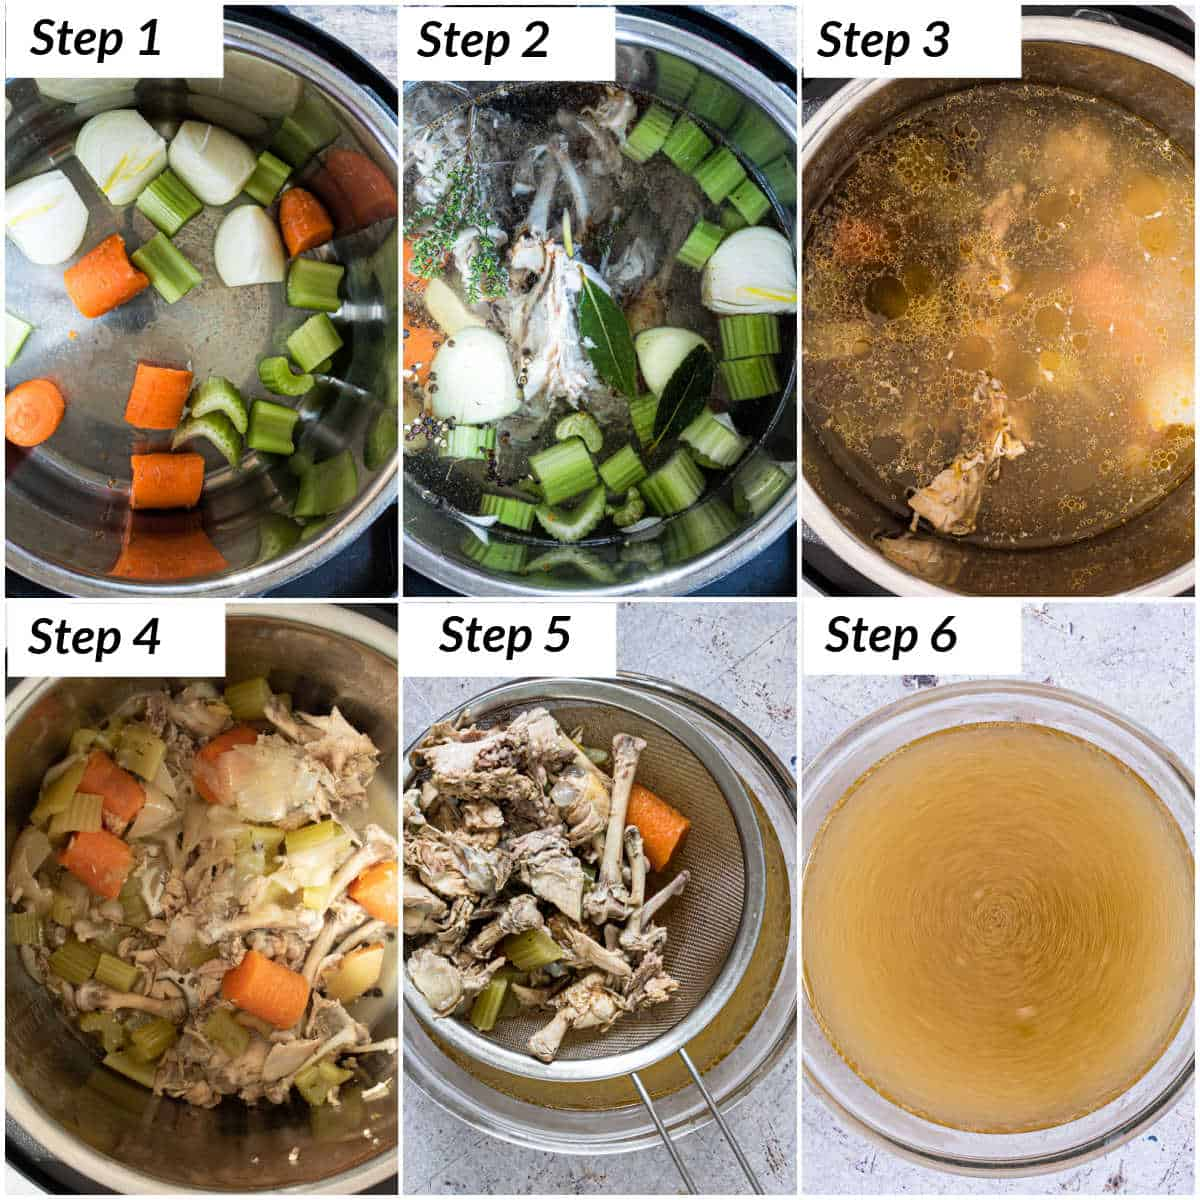 image collage showing the steps for making instant pot chicken stock